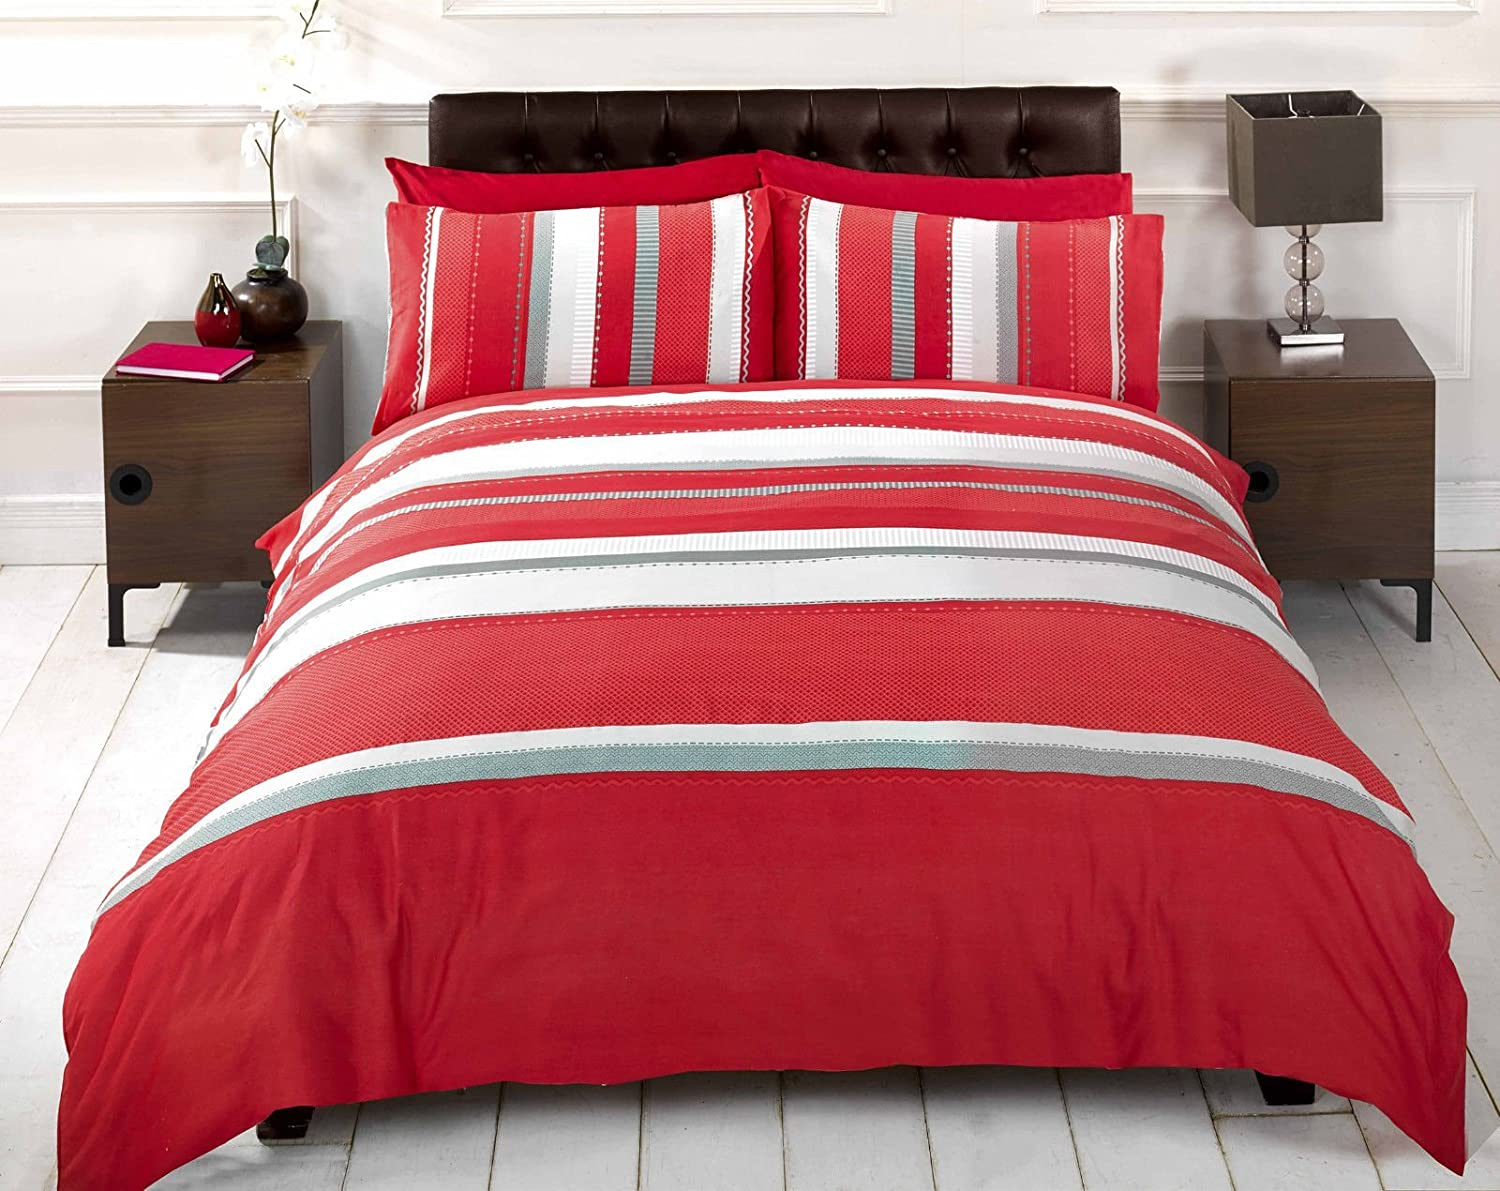 R h linens detroit red grey white striped duvet cover quilt bedding set double bed size